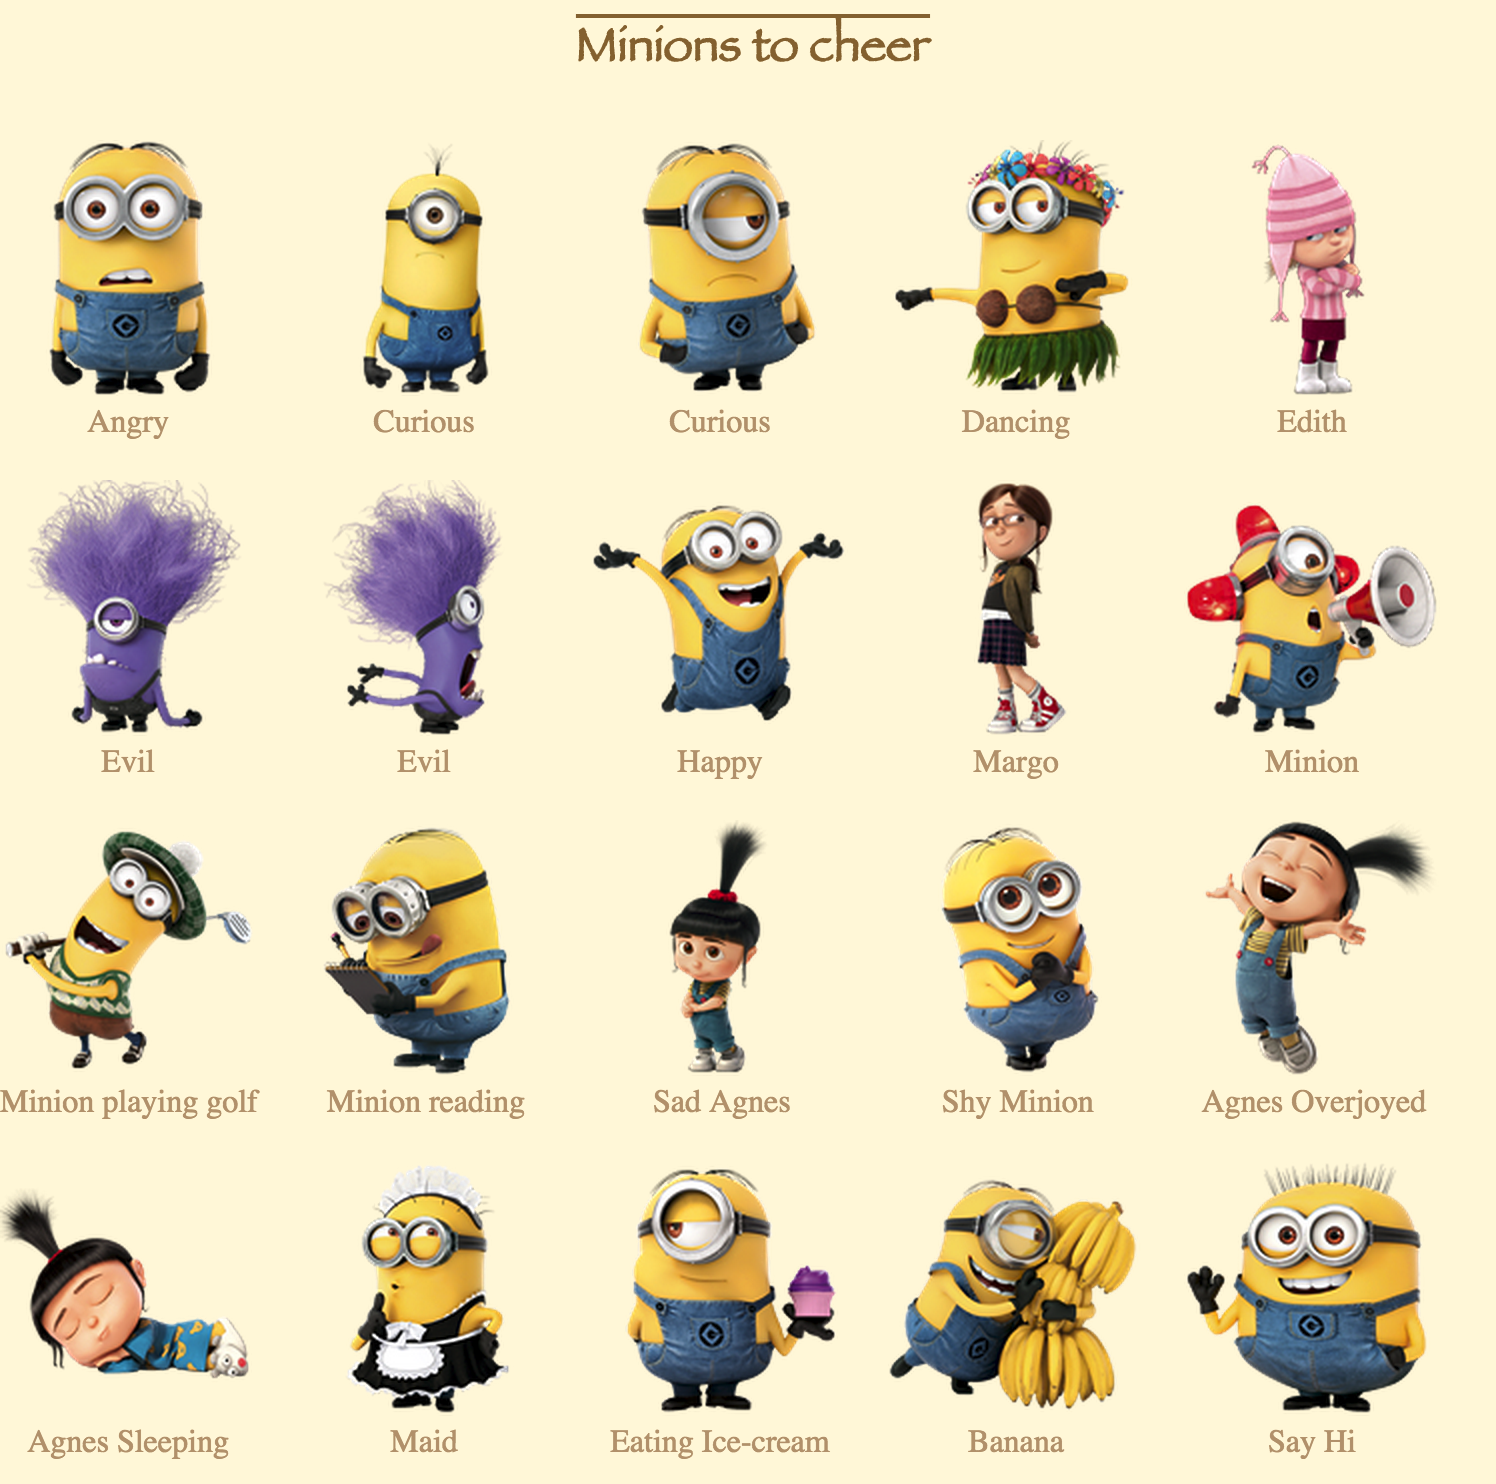 Minions Characters Pictures And Names - impremedia.net